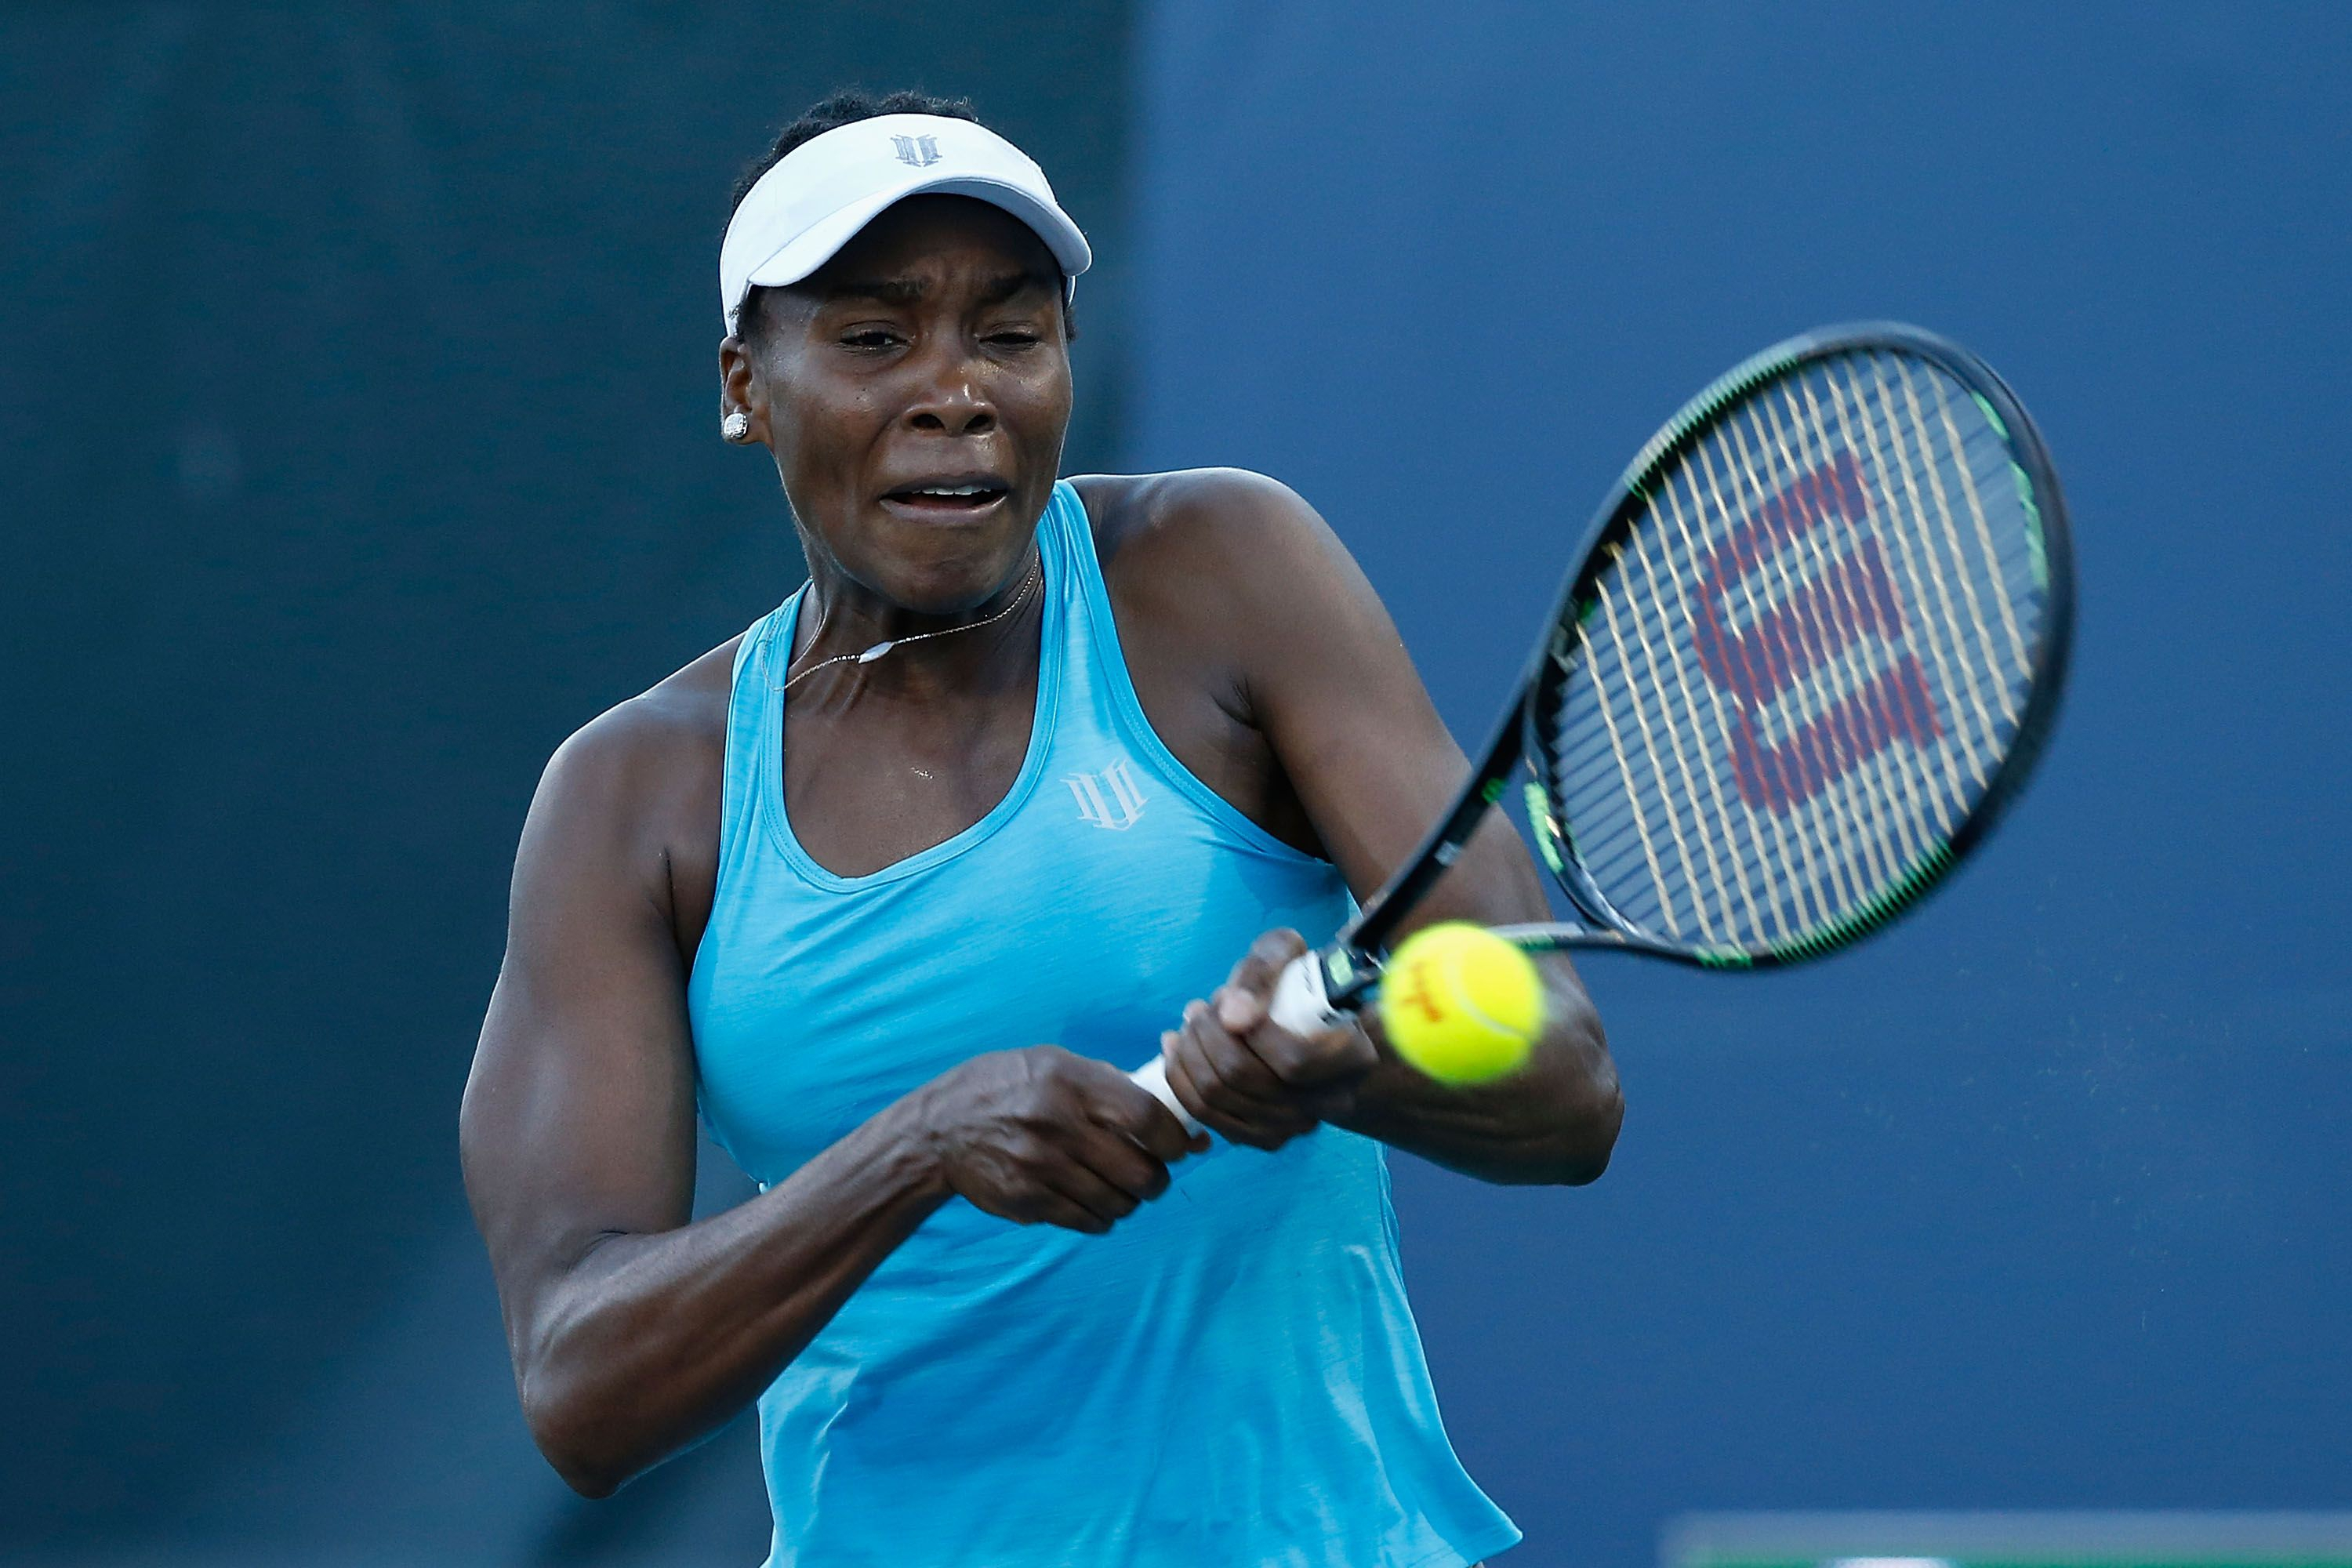 Venus Williams High Quality Wallpapers